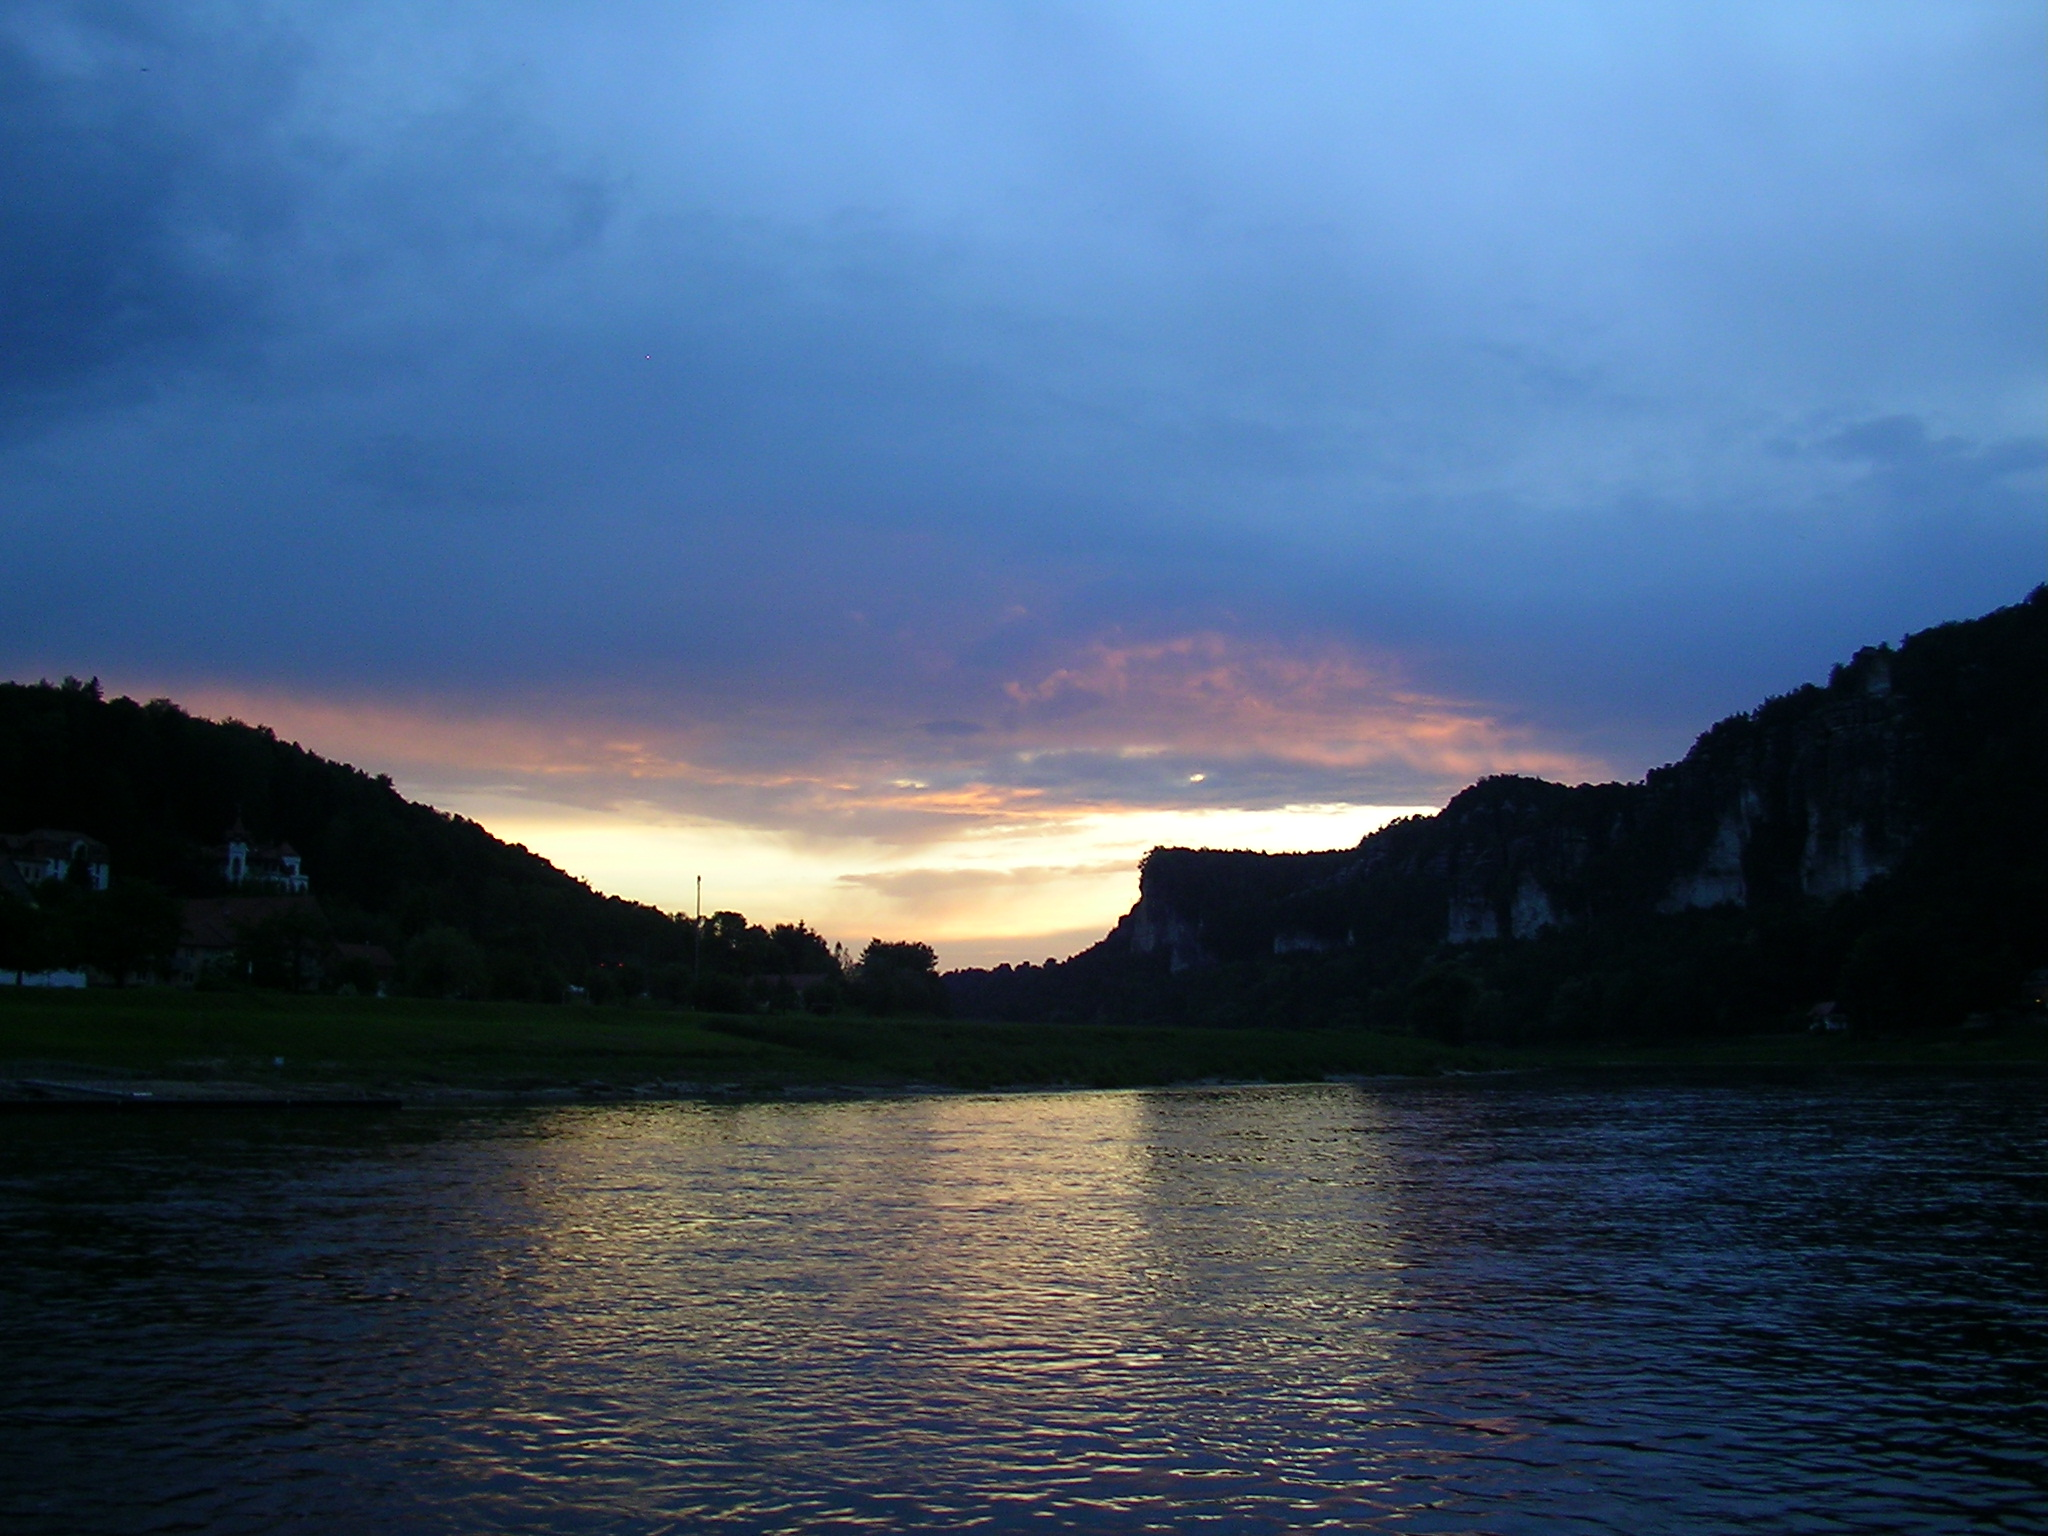 sunset, river elbe, saxon switzerland, elbes sandstone mountains, saxony, eastern germany, offbeat germany, dresden, stadt wehlen